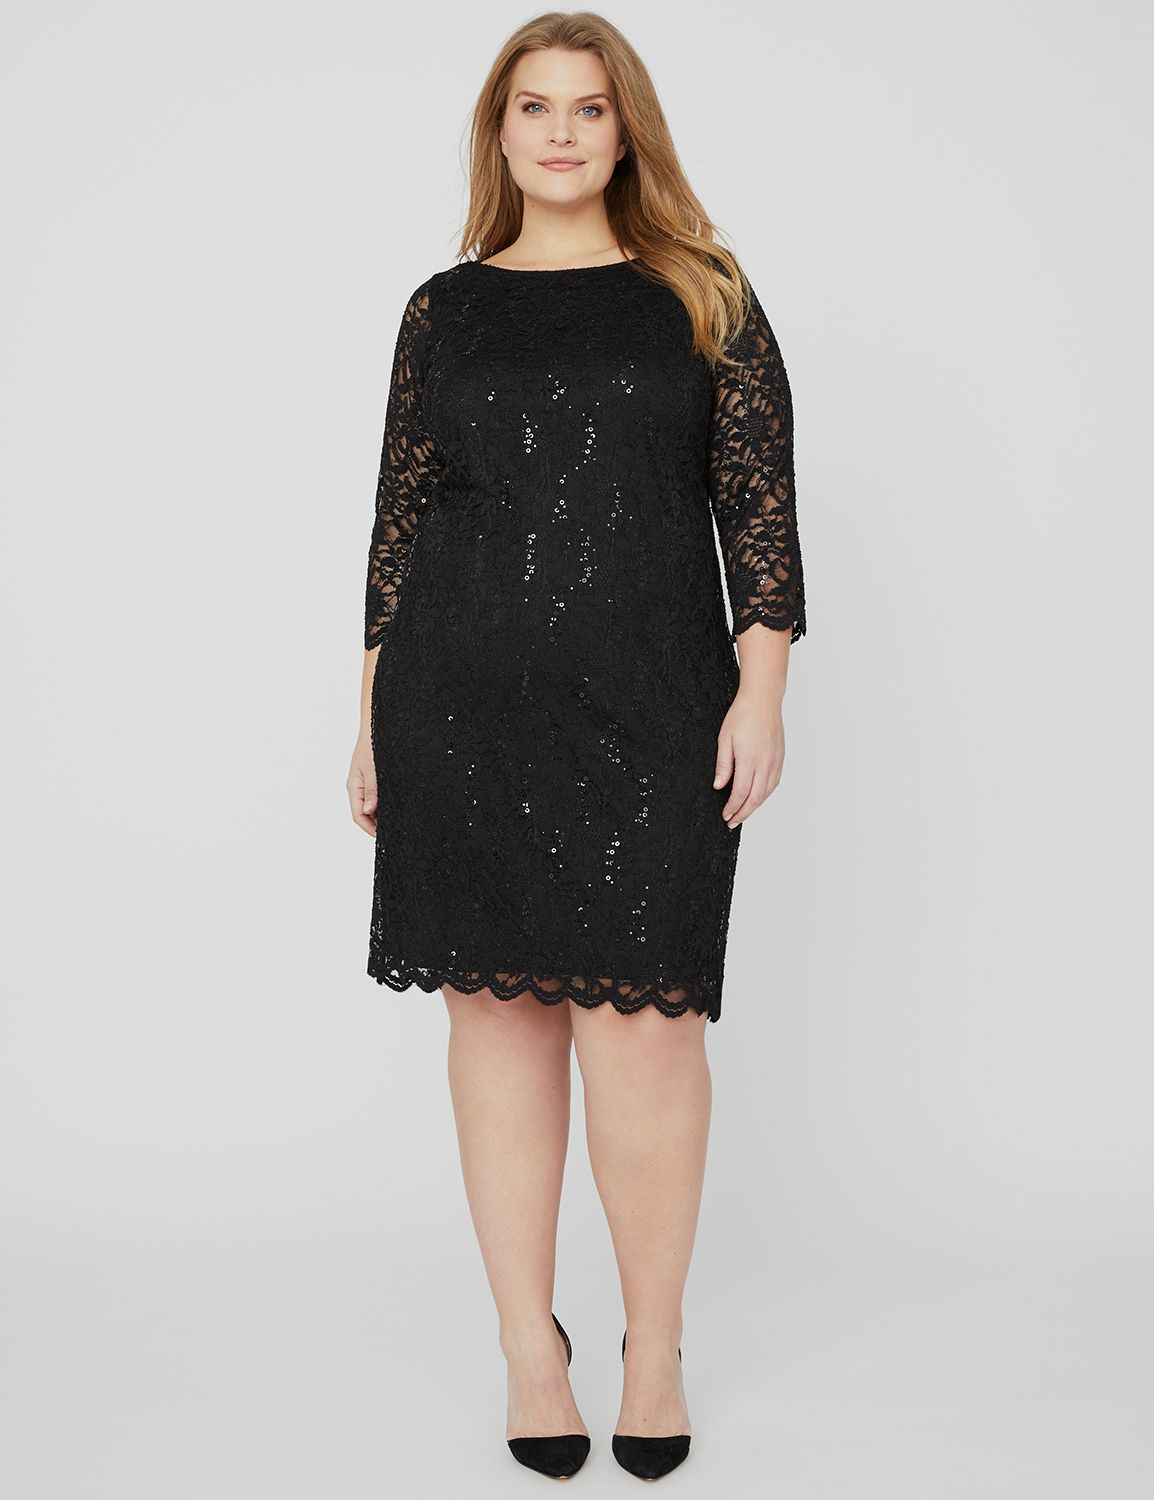 Sequin Lace Shift Dress 1093614 Lace Shift - #88922 MP-300107354